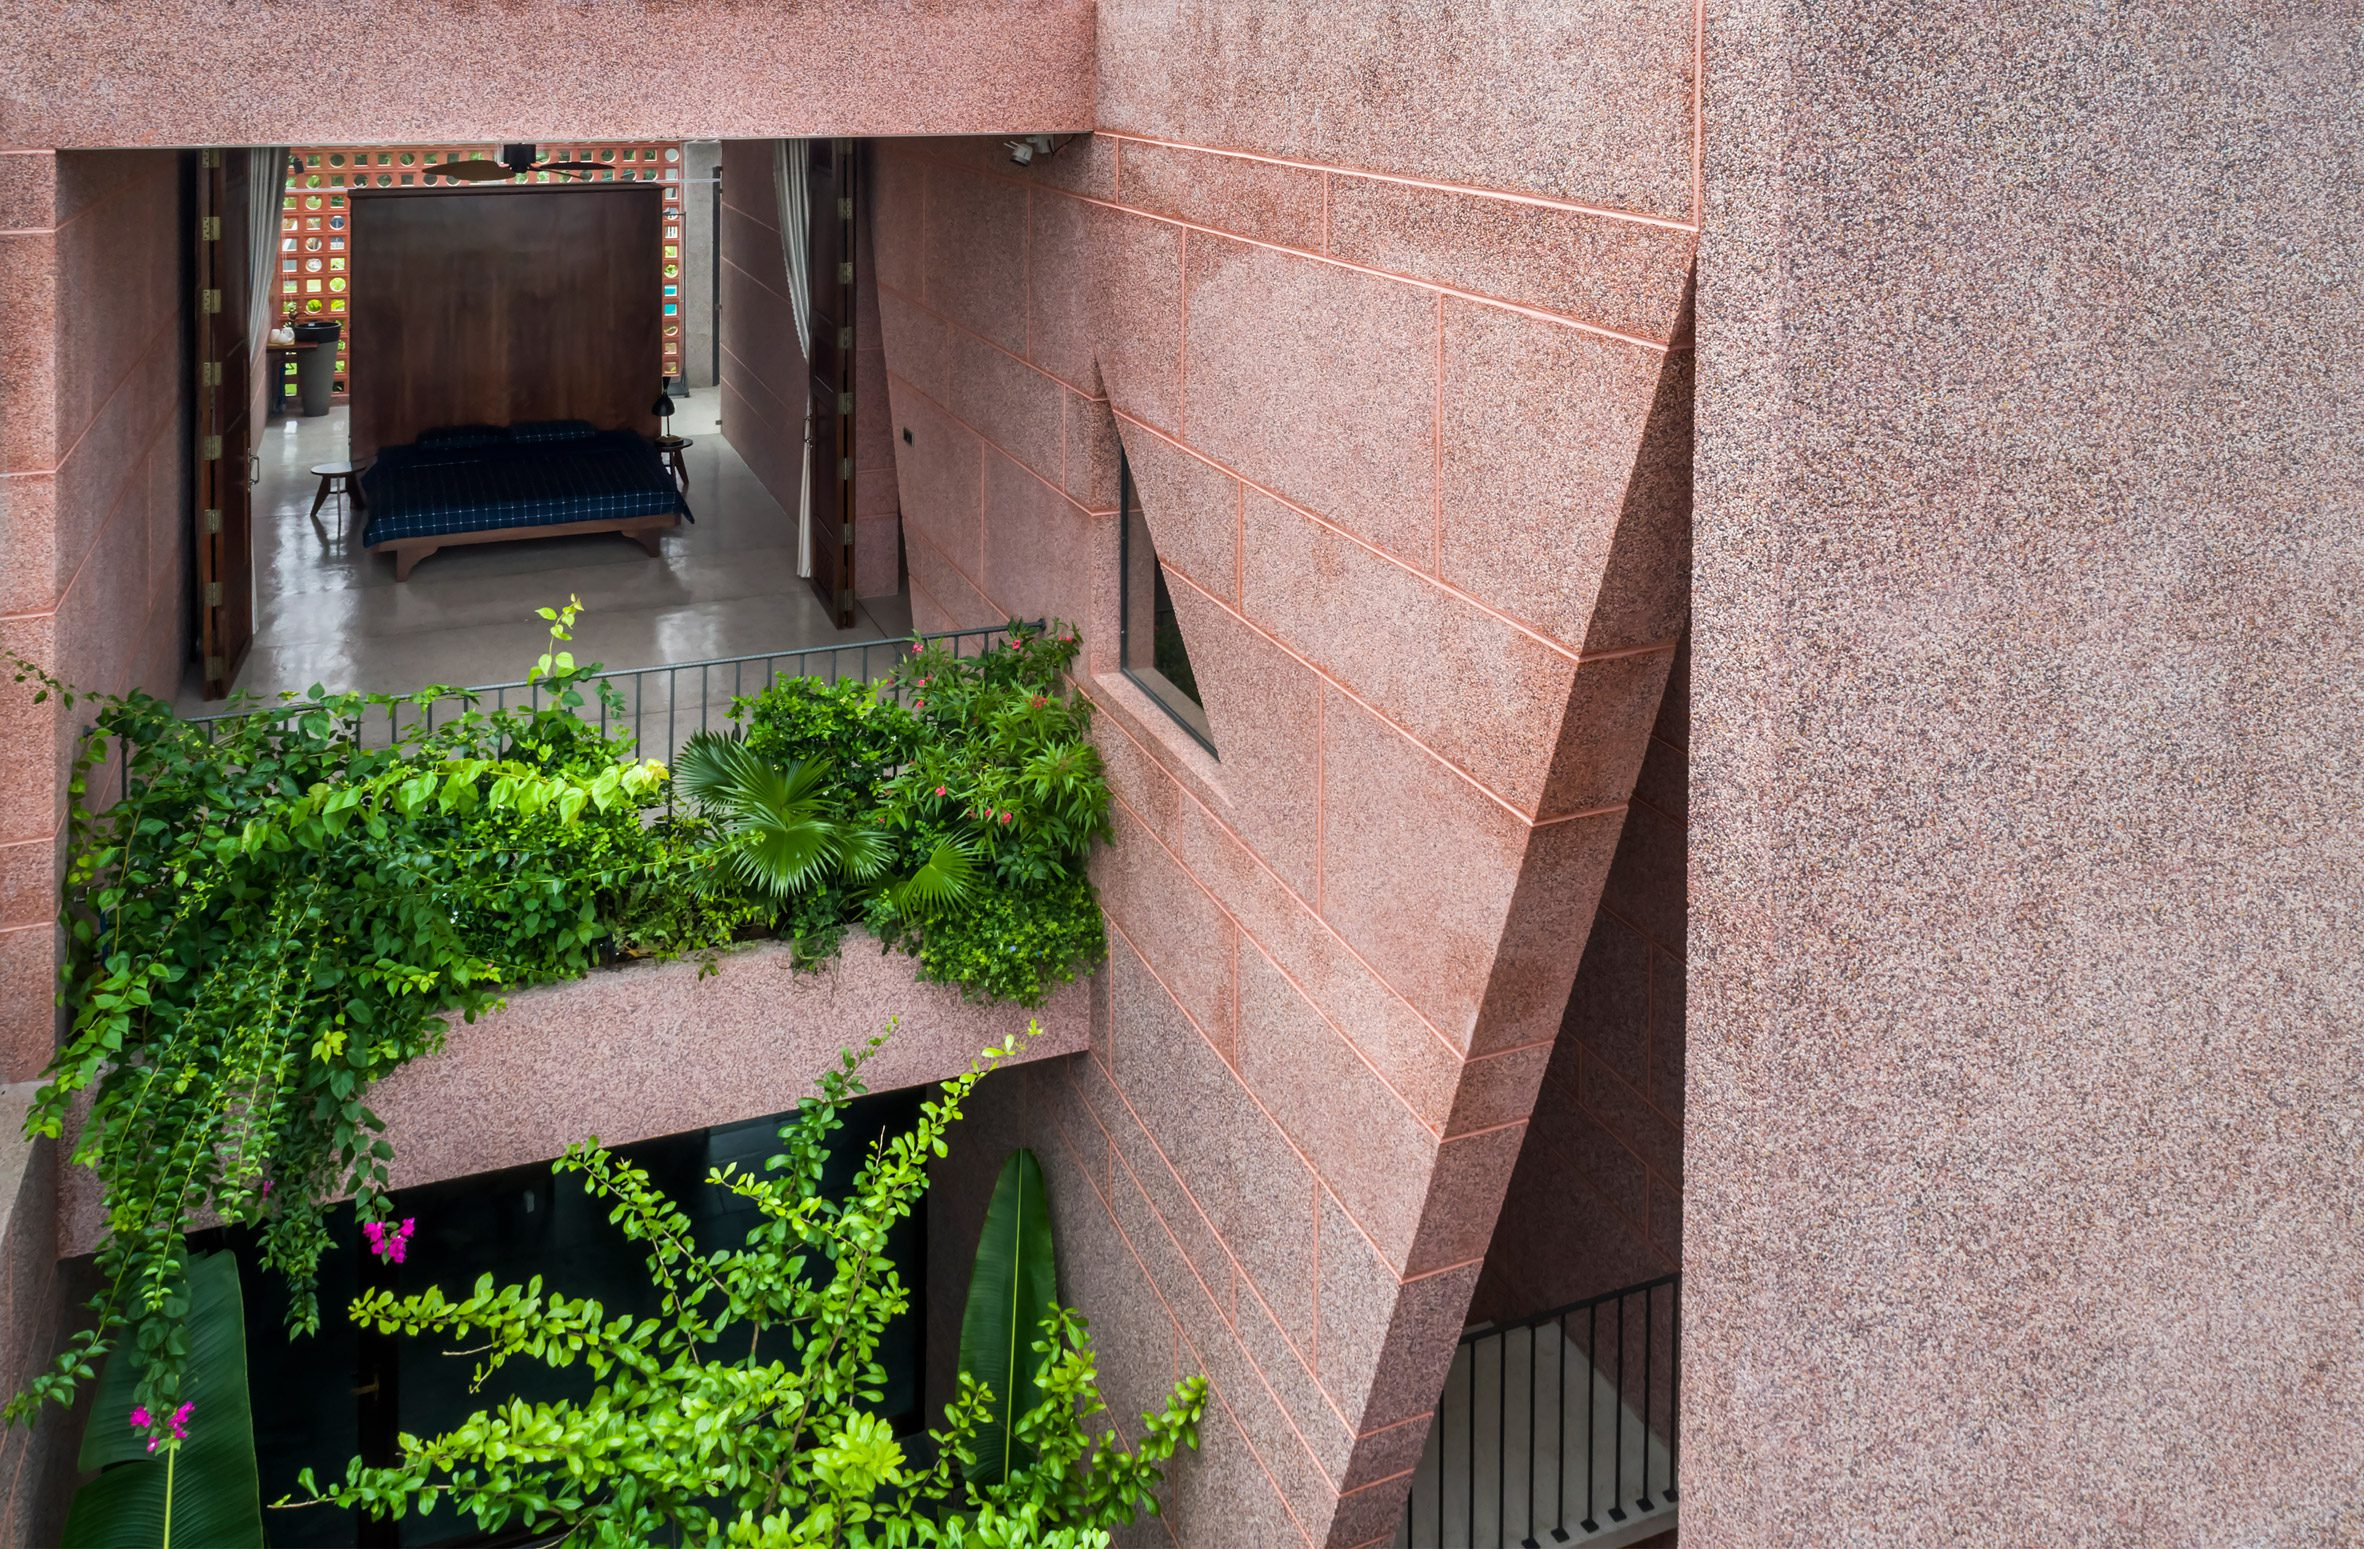 Planted balconies are adjoined to the bedrooms of pink house